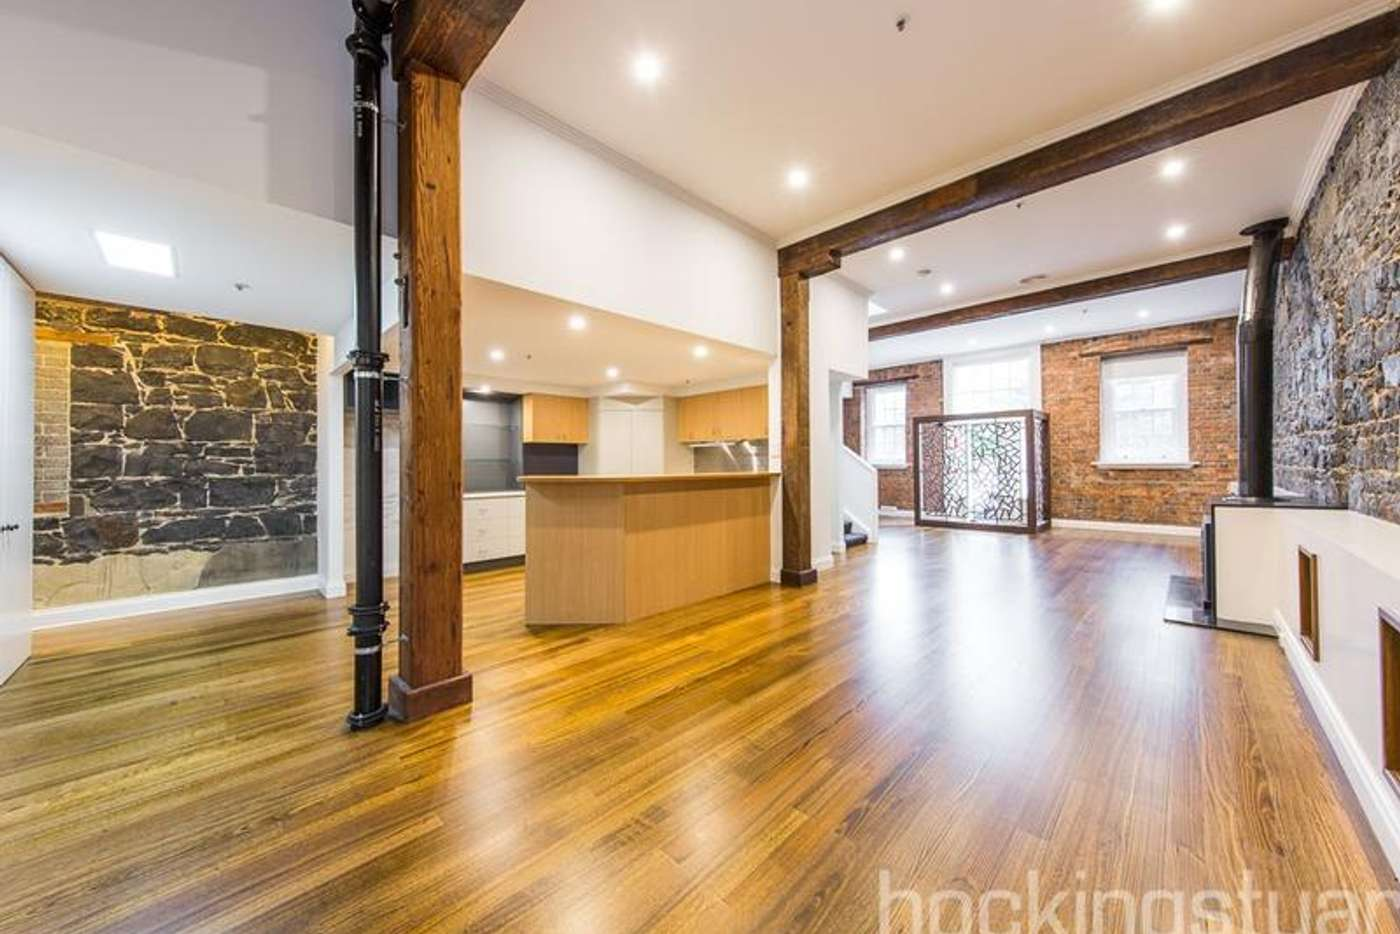 Main view of Homely house listing, 37 Stokes Street, Port Melbourne VIC 3207